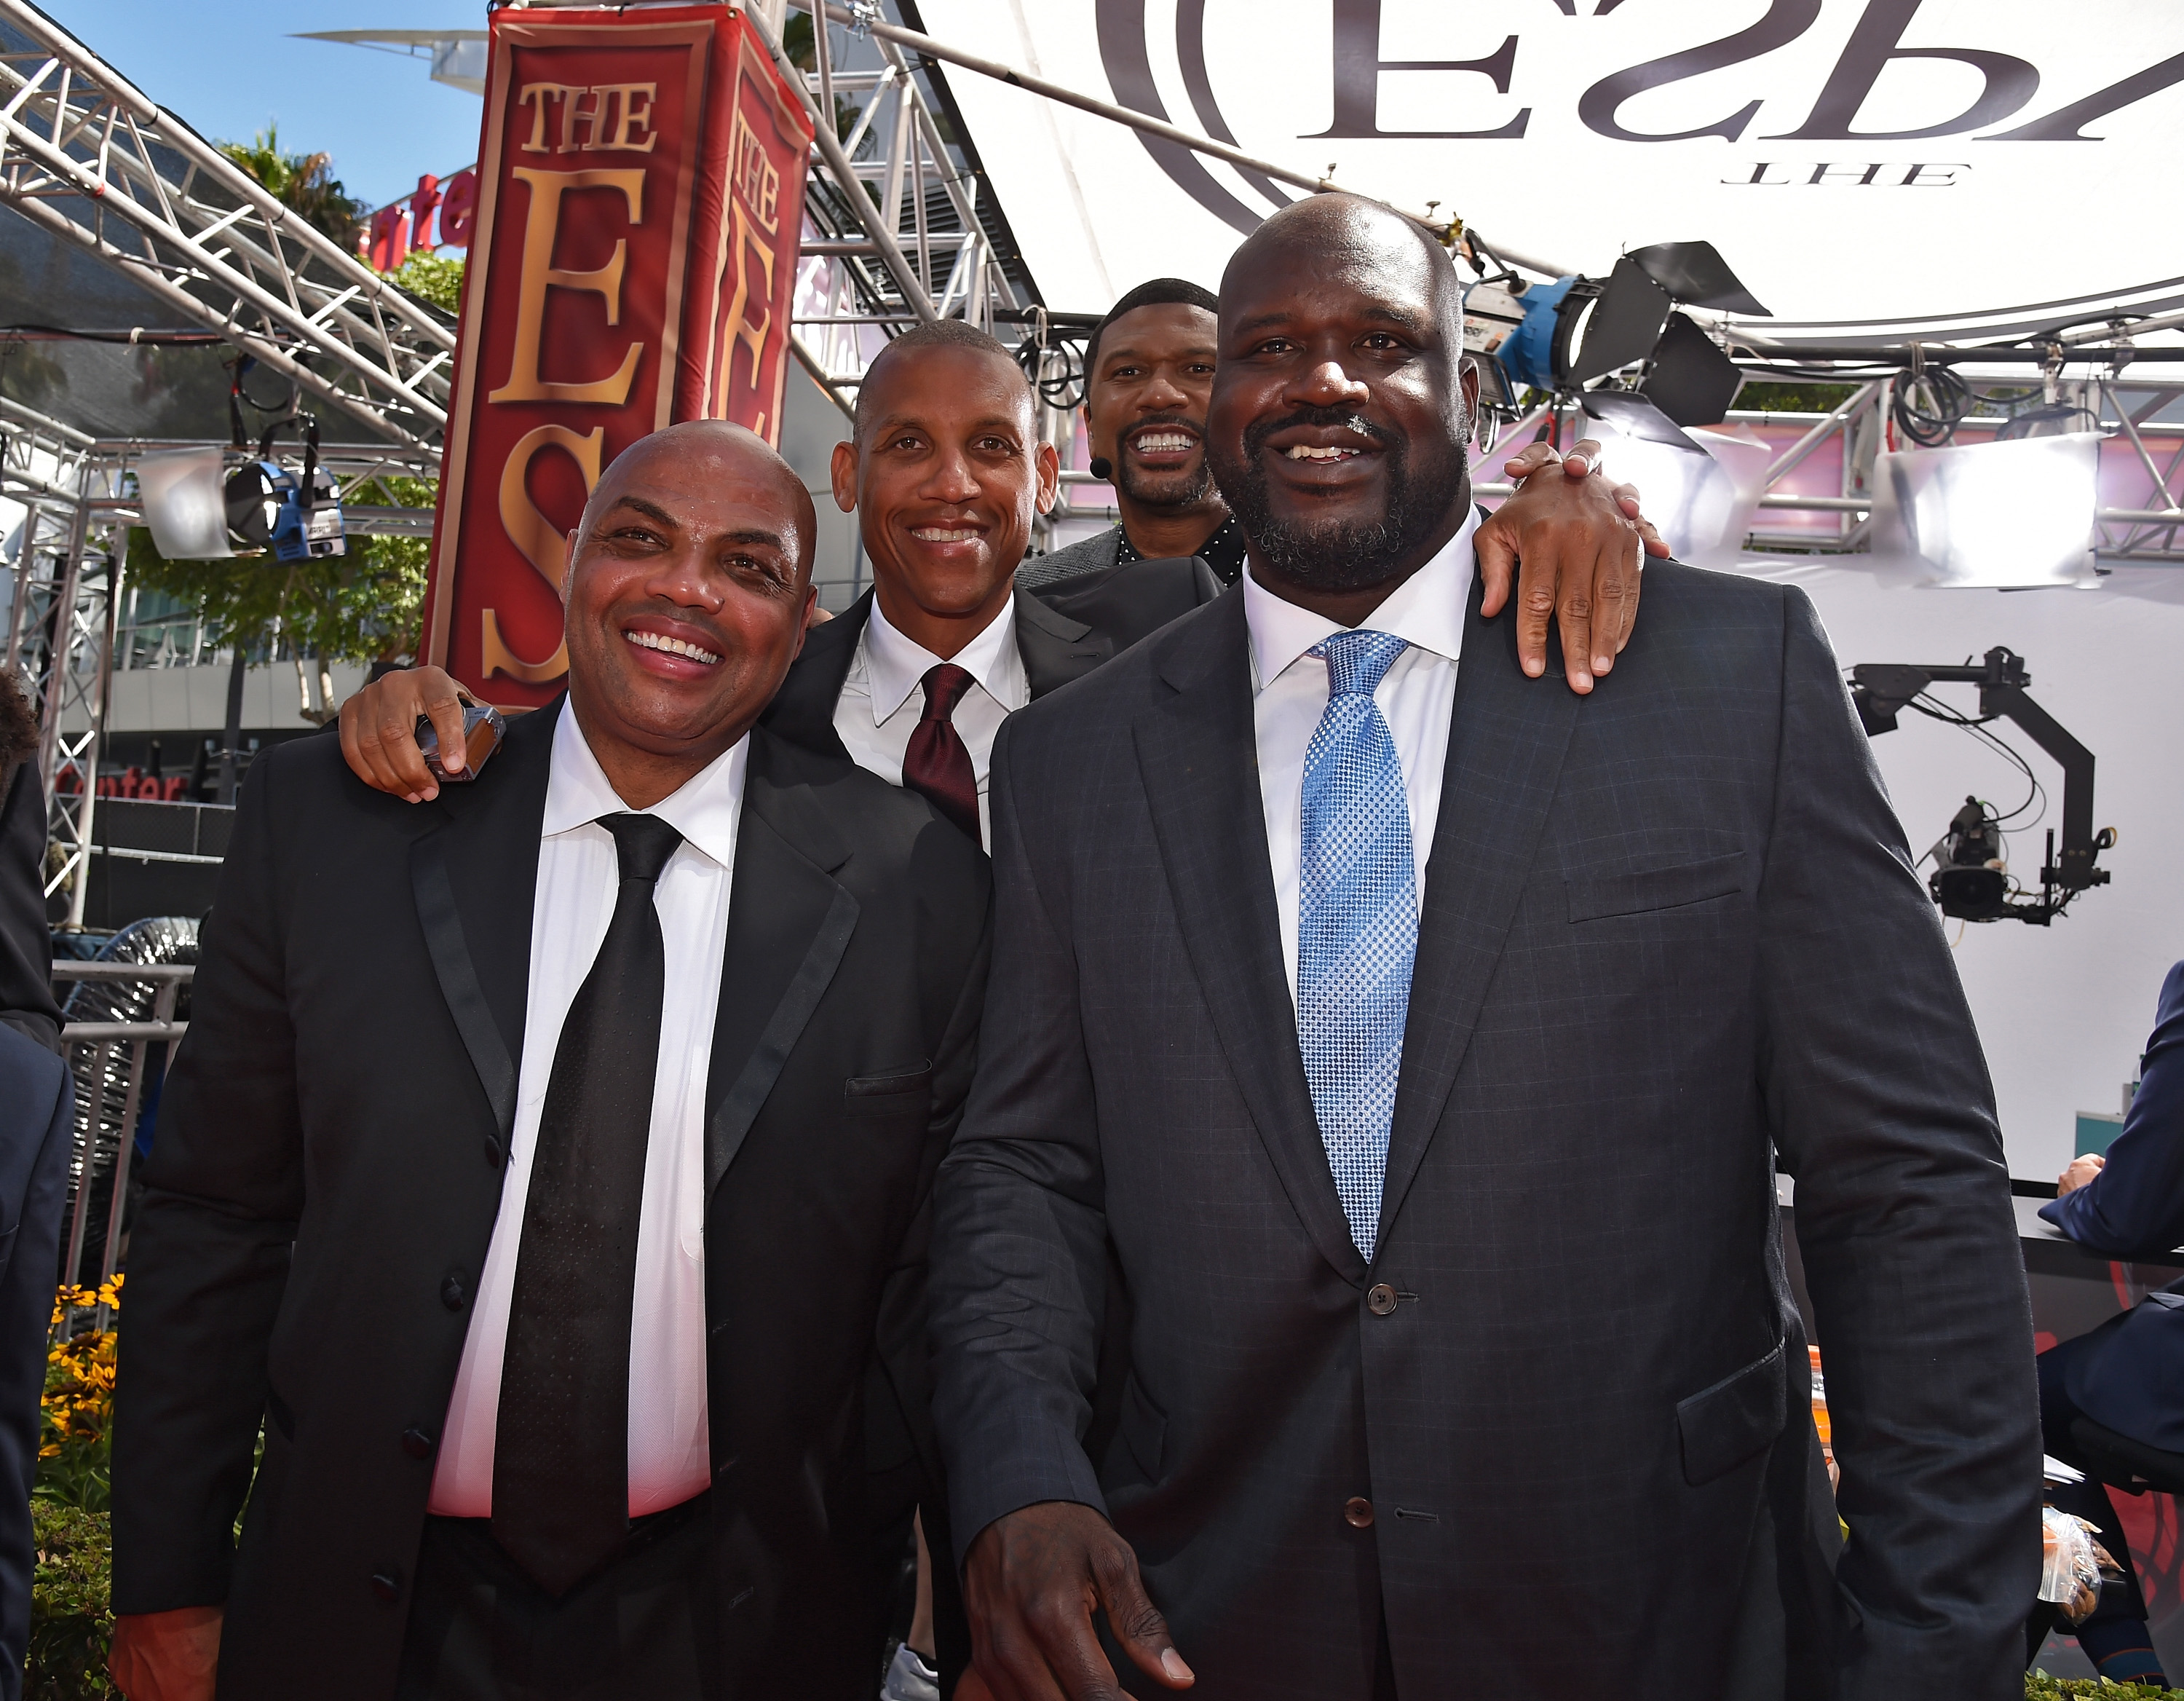 Hall of Fame legends Charles Barkley (L) and Shaquille O'Neal (R) are under fire for their controversial takes on the Breonna Taylor shooting.